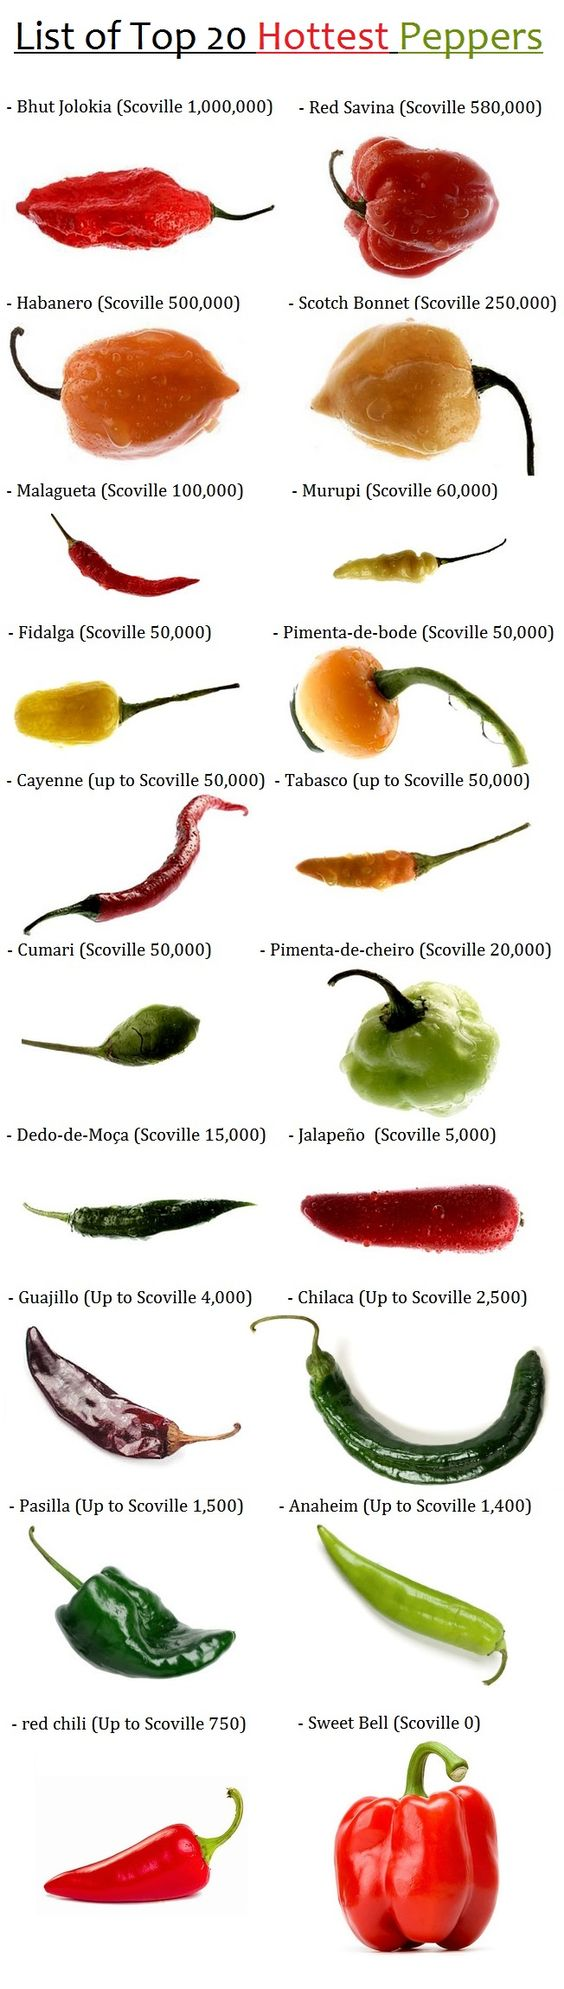 List of Top 20 Hottest Peppers